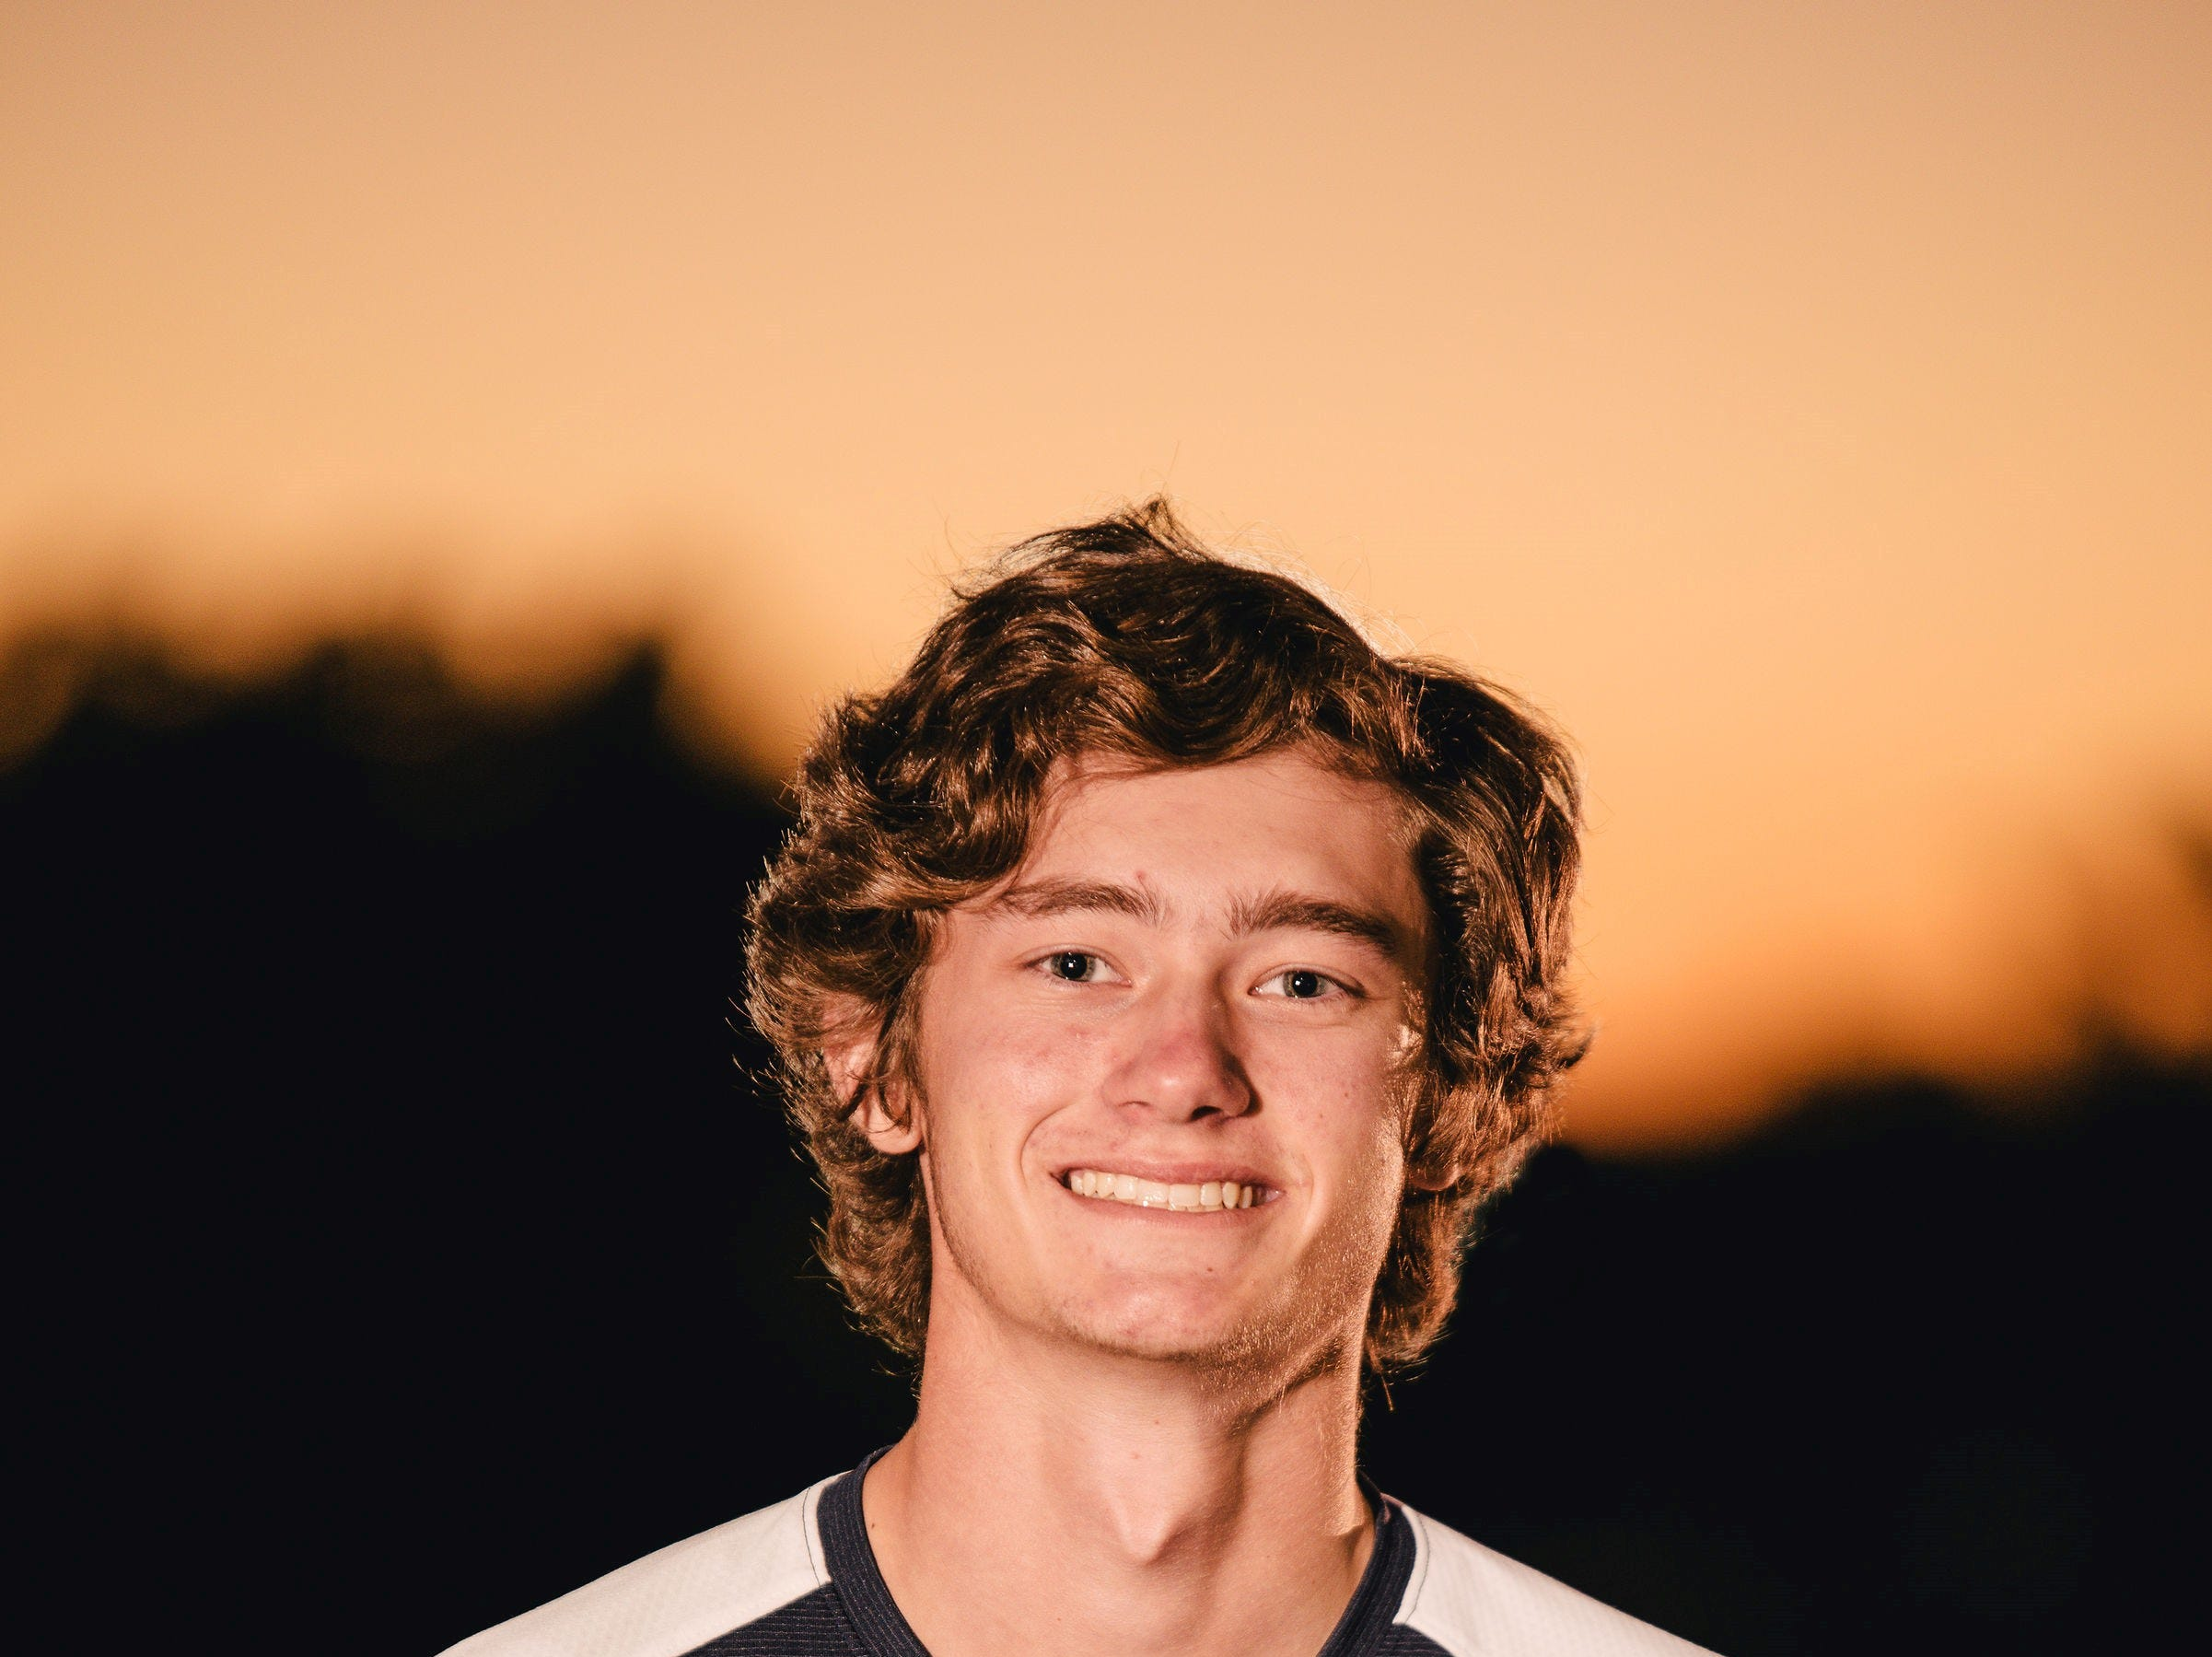 St. John Paul II senior forward Braidan O'Connor was selected to the 2019 All-Big Bend boys soccer first team.